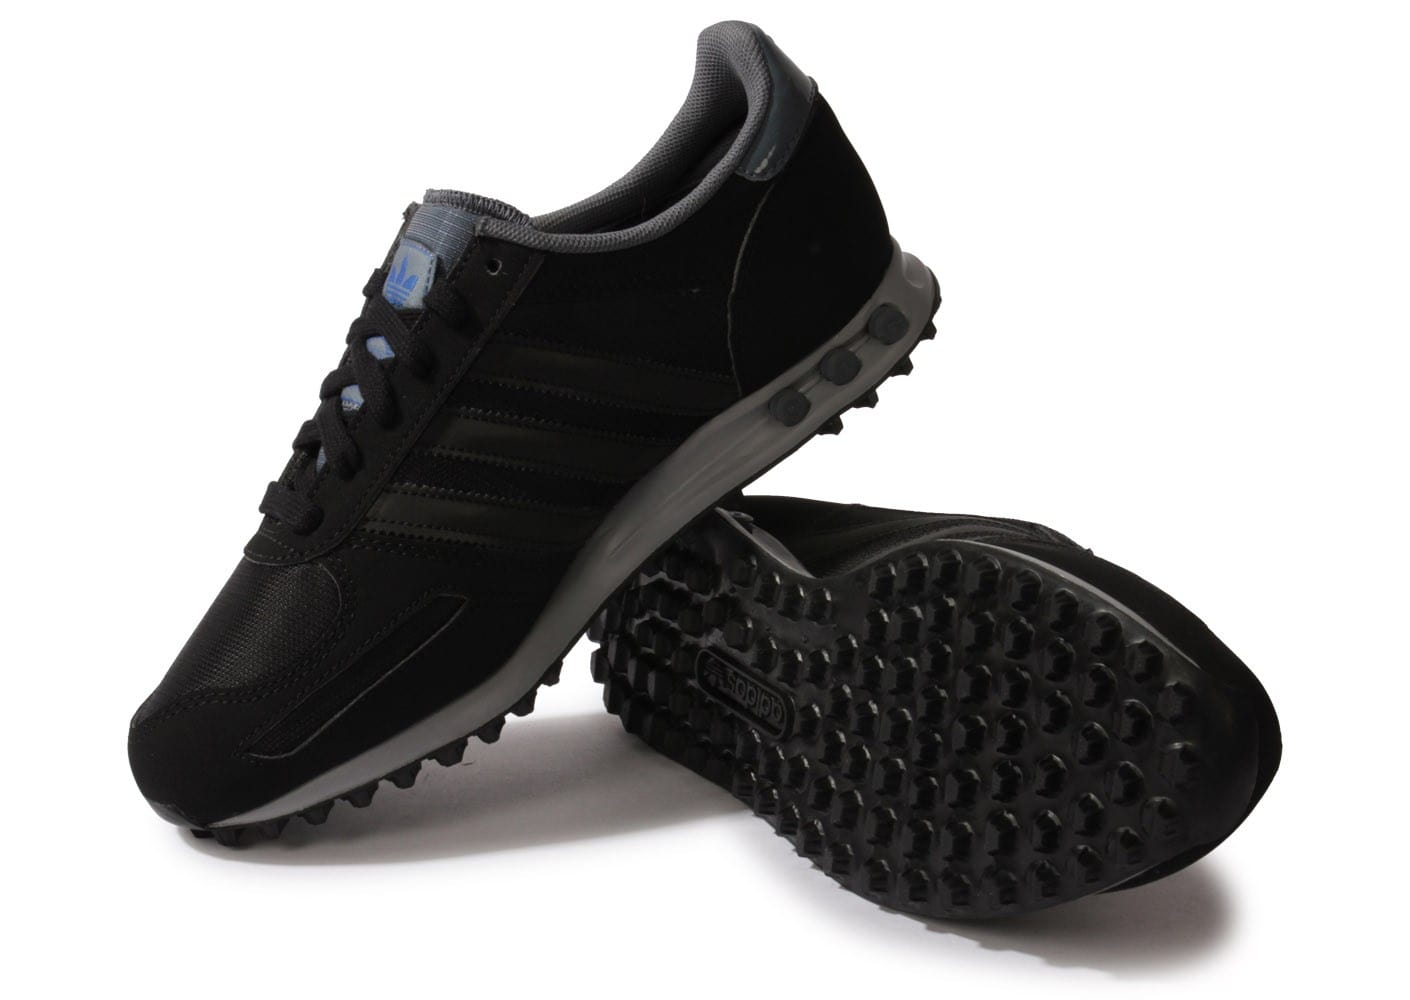 adidas L.a Trainer Noire - Chaussures adidas - Chausport